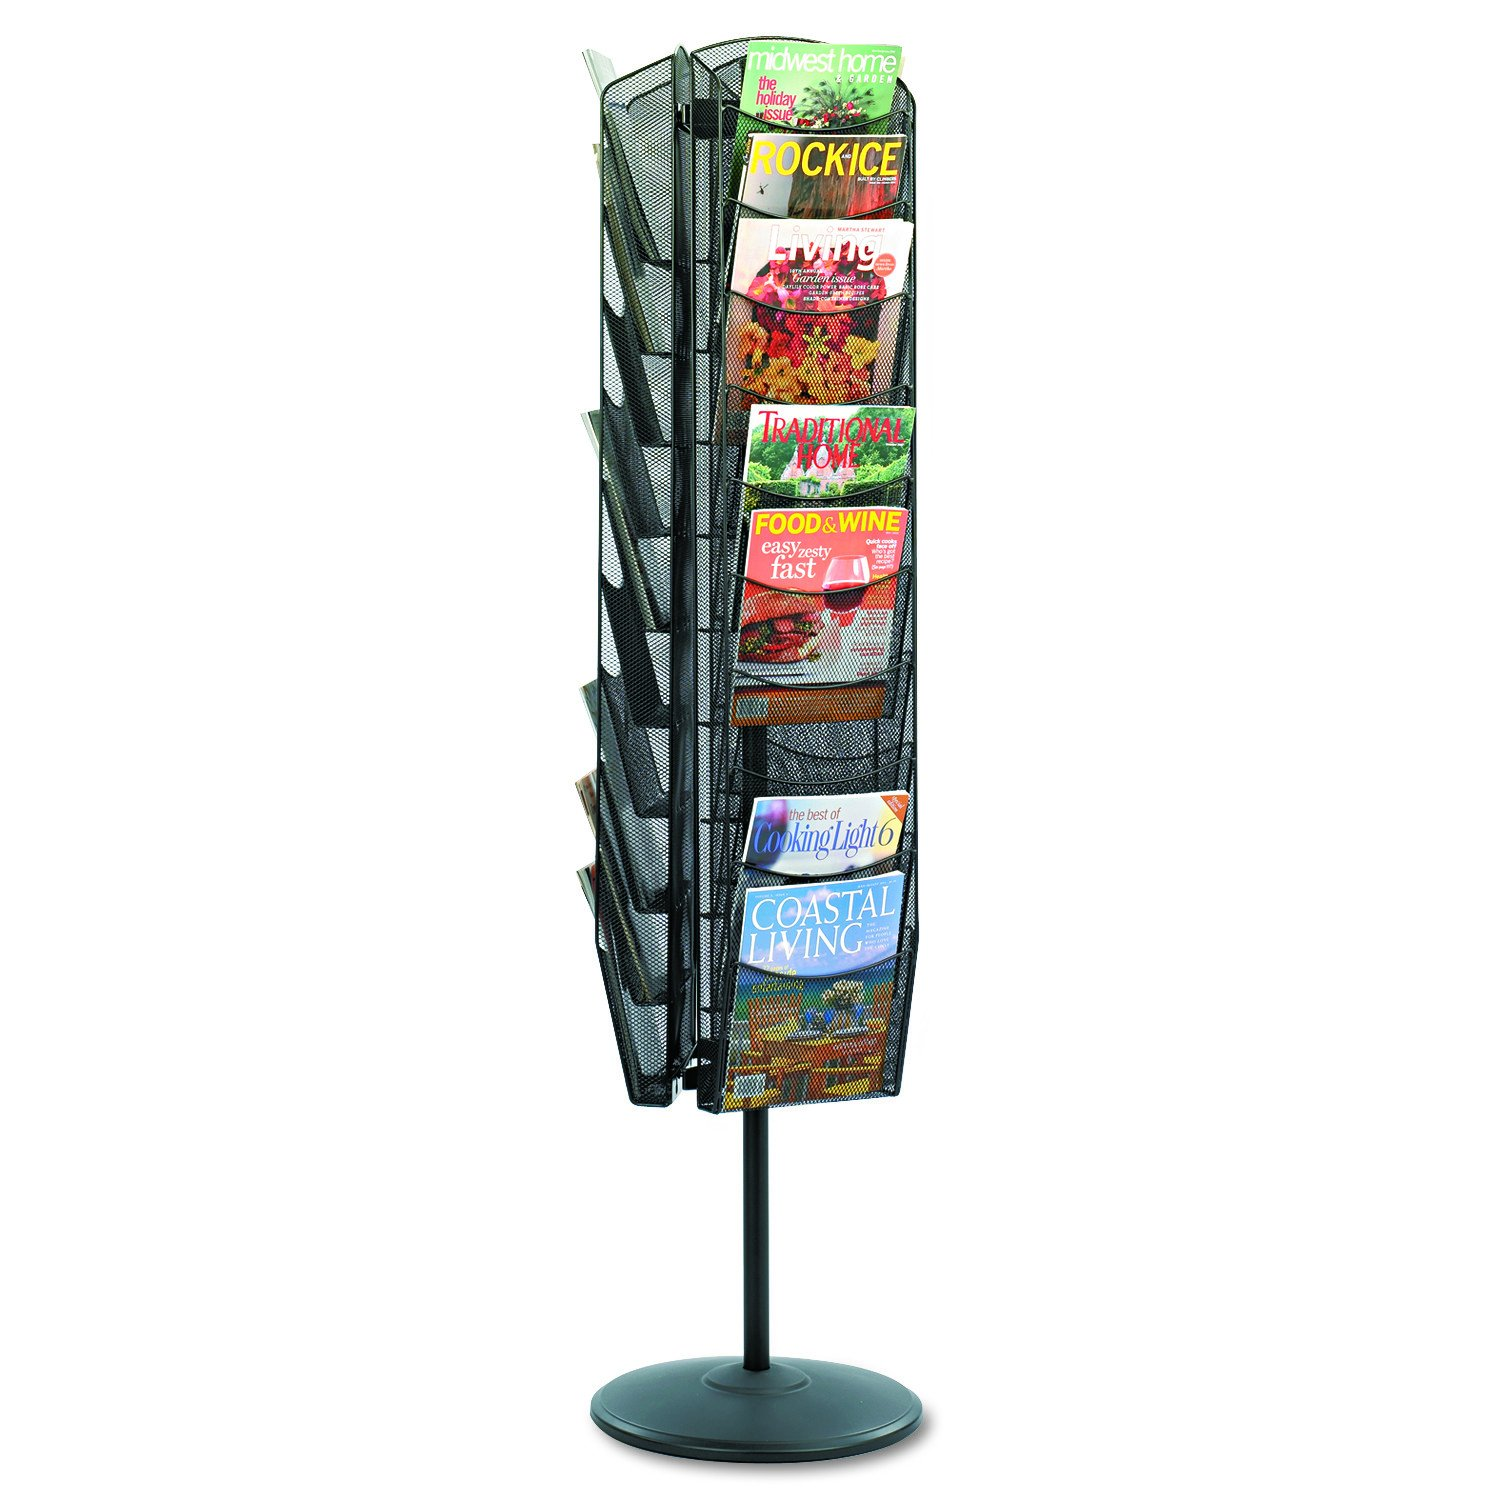 Safco Products Onyx Mesh Rotating Magazine Stand, 5577BL, Black Powder Coat Finish, Durable Steel Mesh Construction, Rotates 360 Degrees by Safco Products